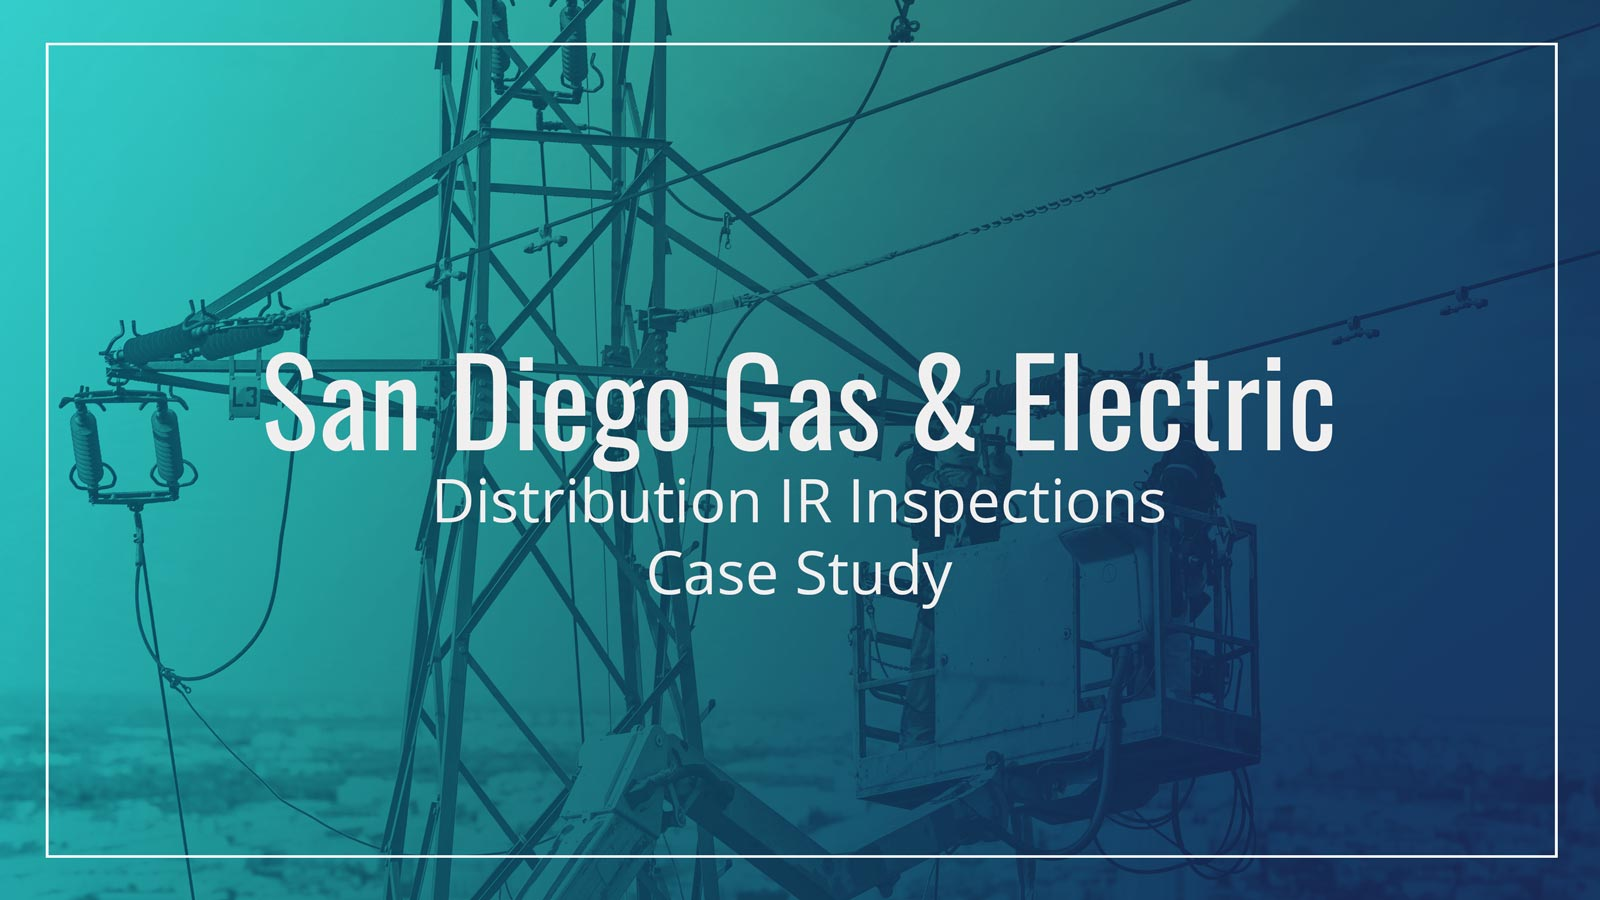 San Diego Gas & Electric – Distribution IR Inspections